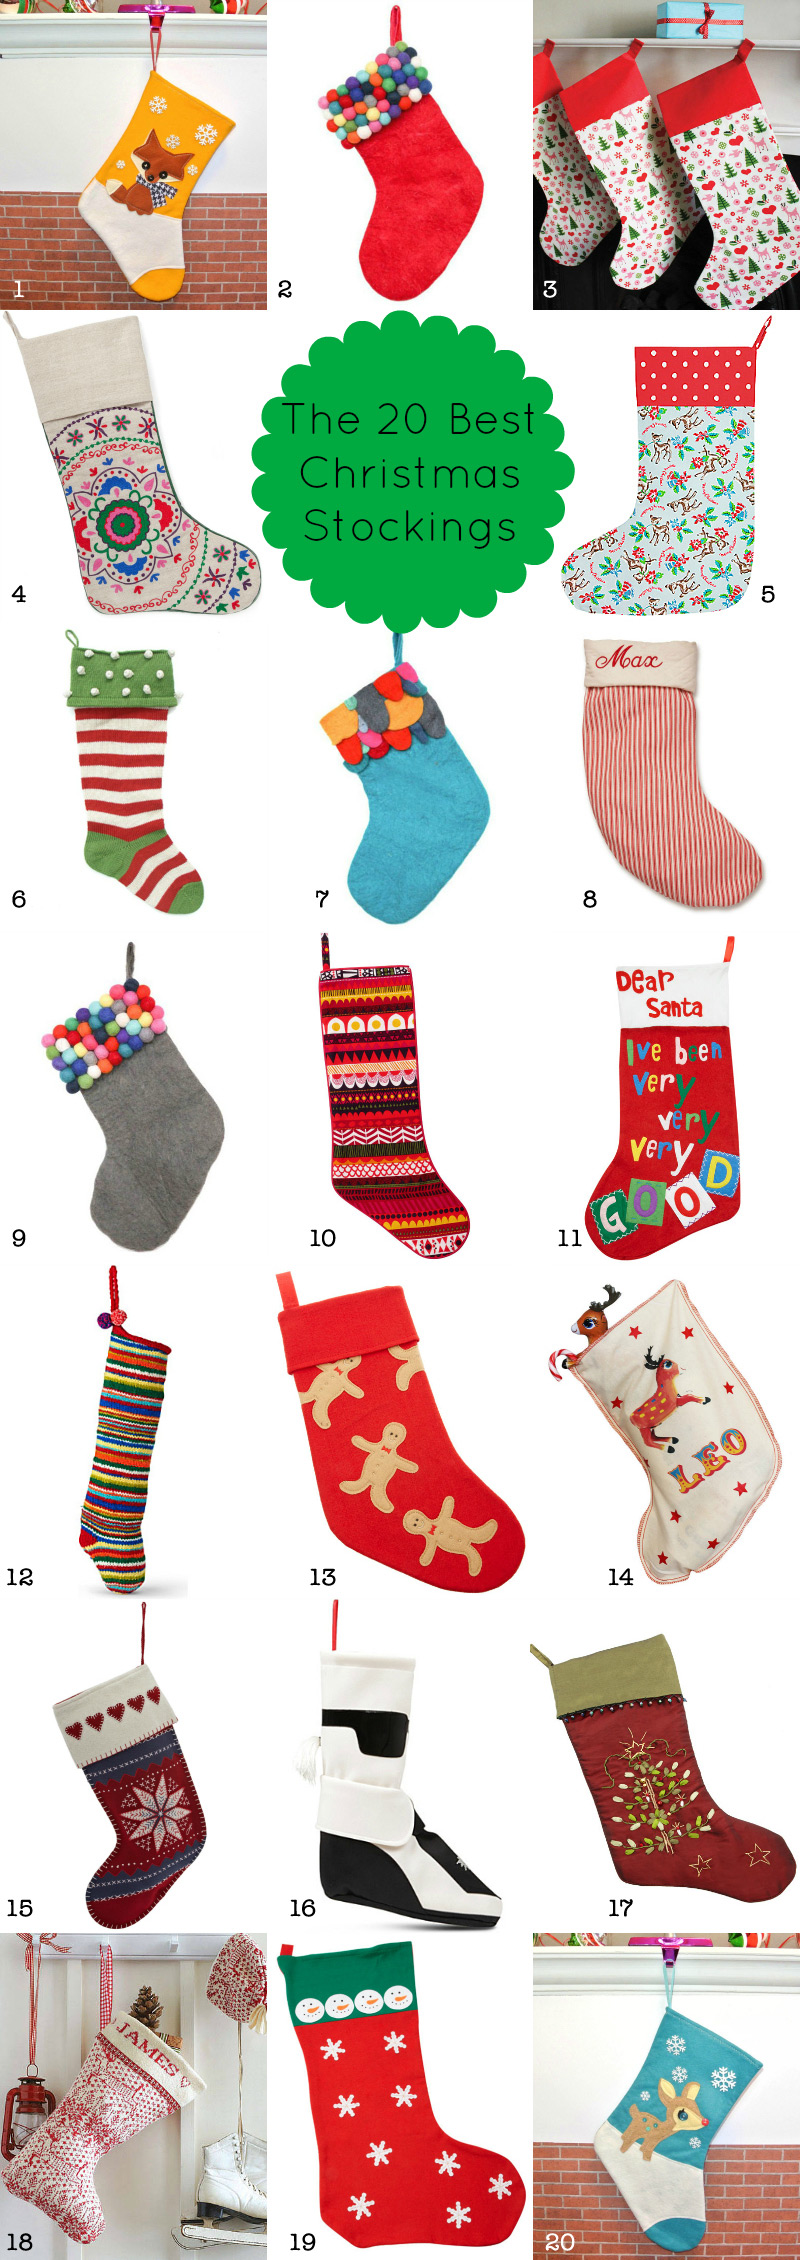 20 Best Stockings 2012 via WeeBirdy.com